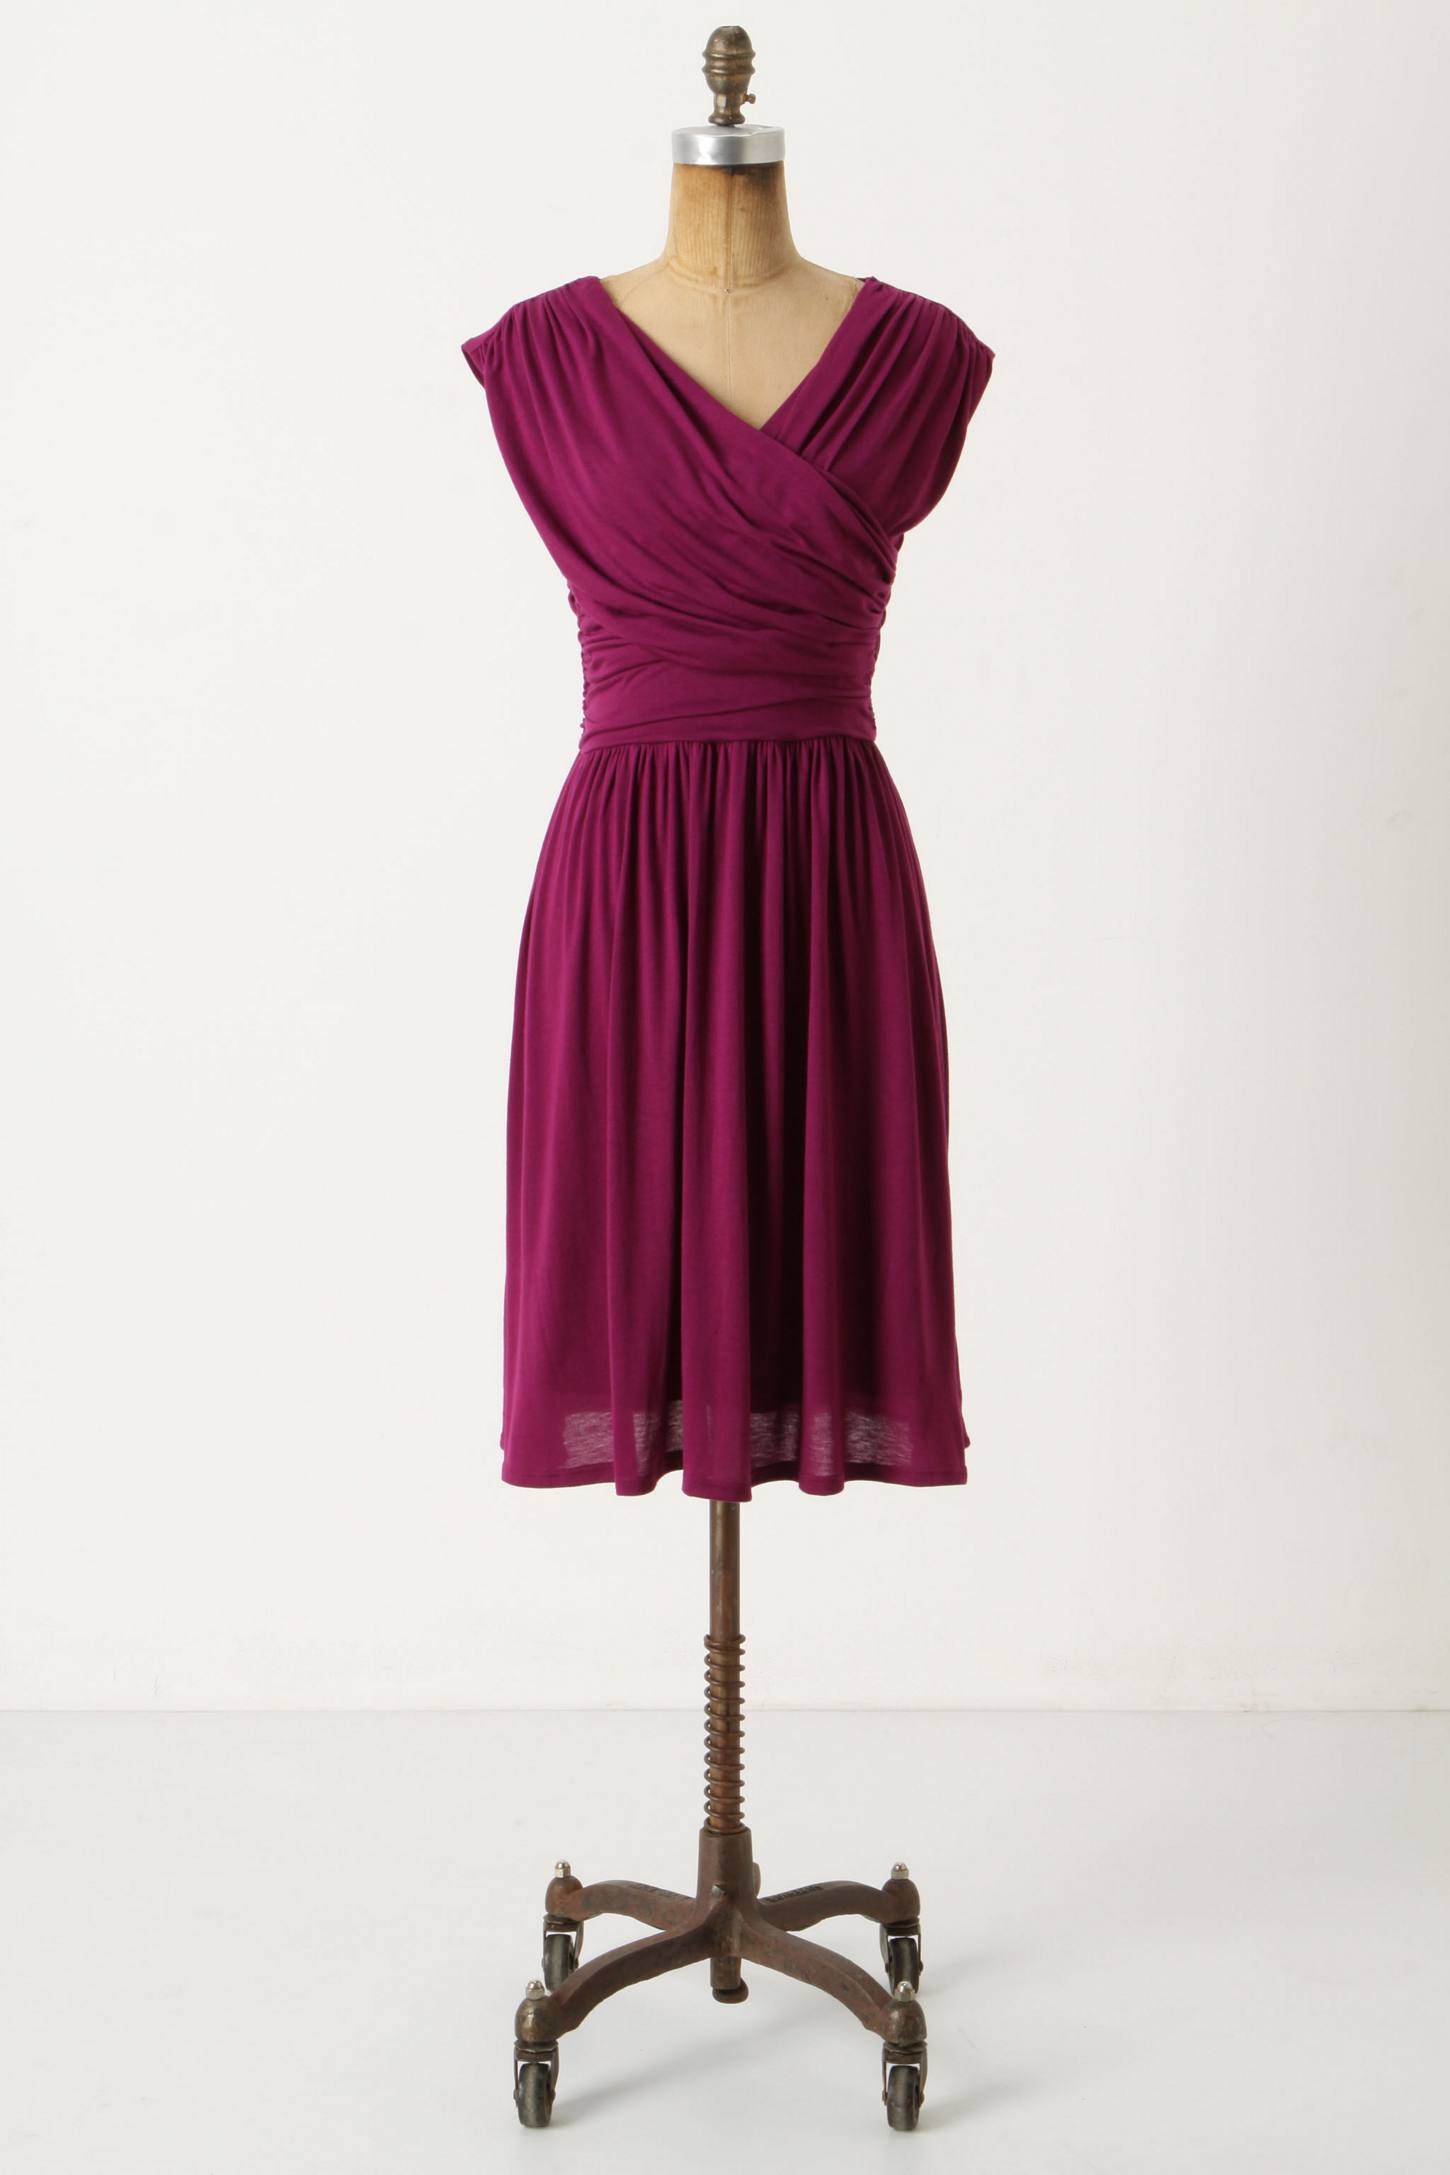 Whirligig Dress - Anthropologie.com :  jersey anthropologie dress draped